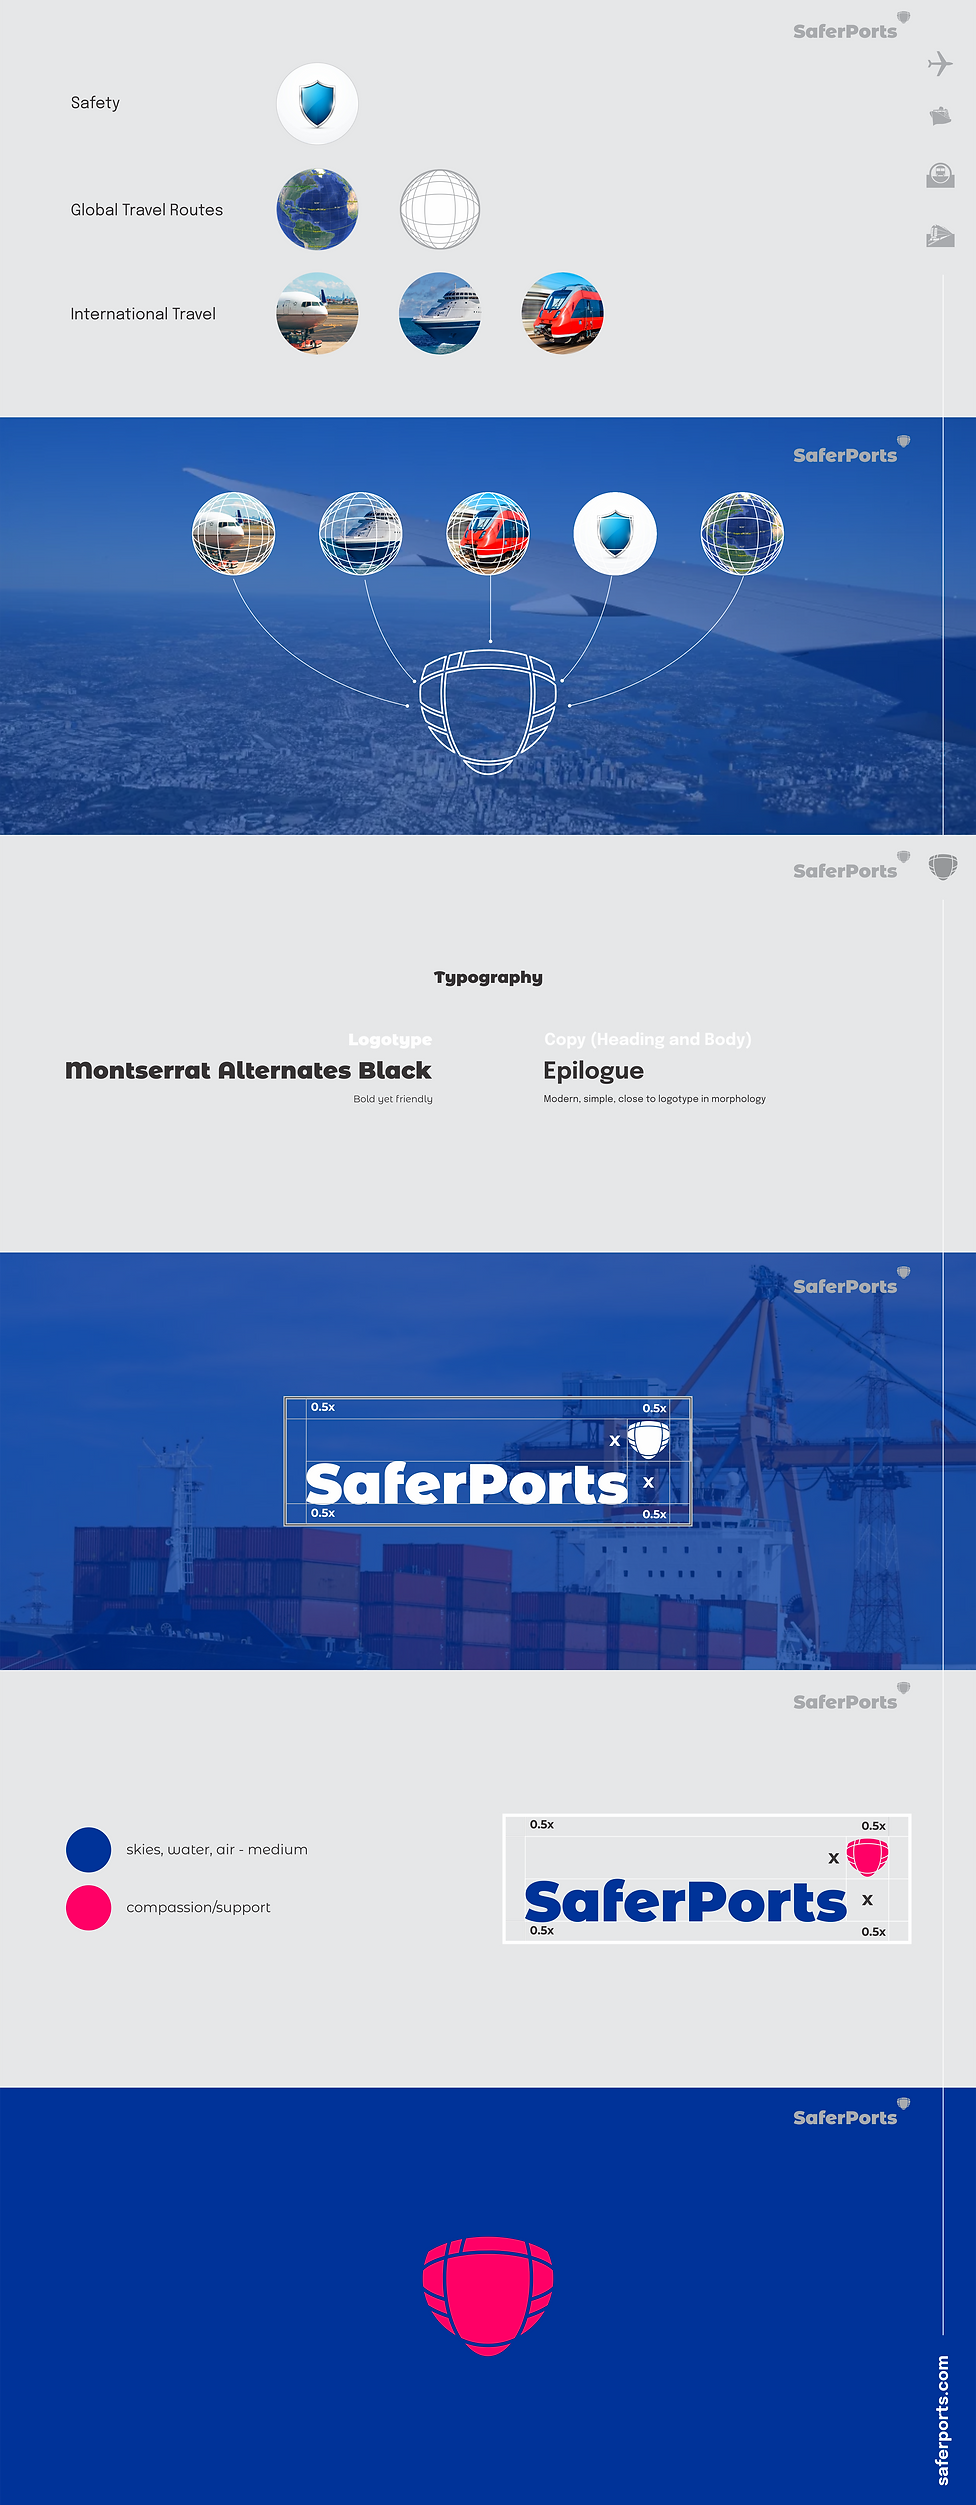 saferports logo.png